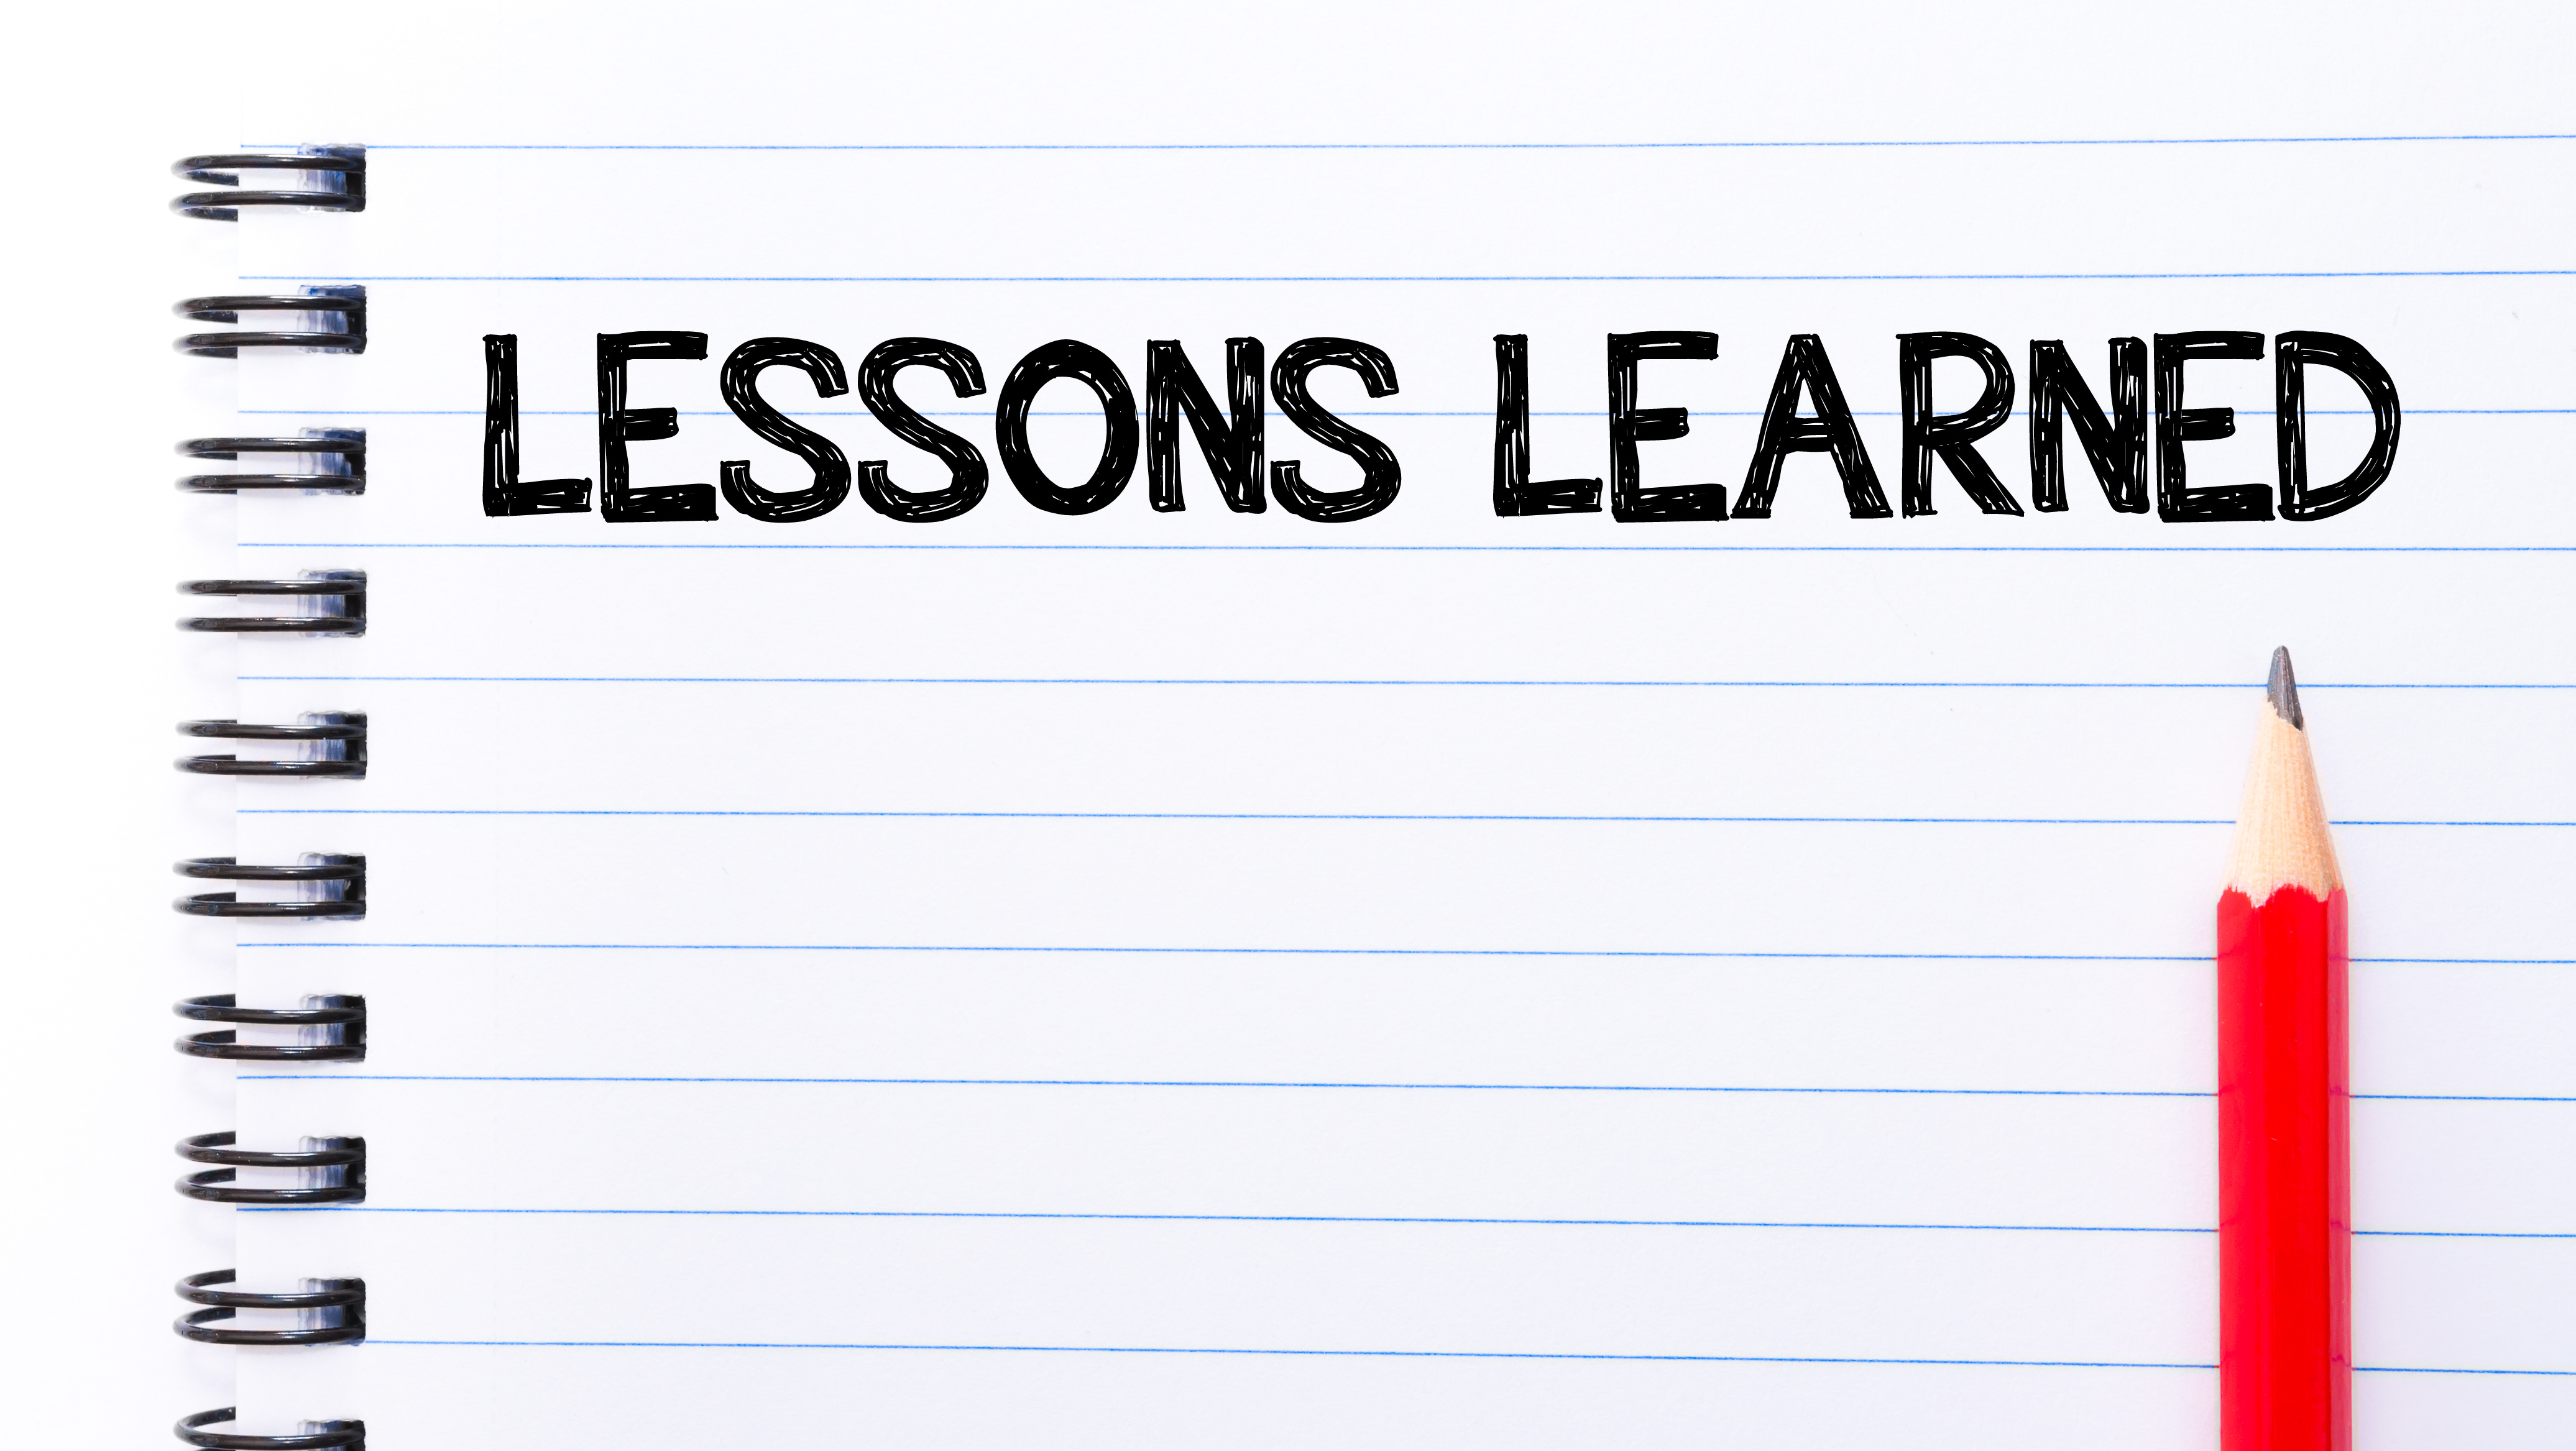 Lessons Learned Text written on notebook page, red pencil on the right. Motivational Concept image